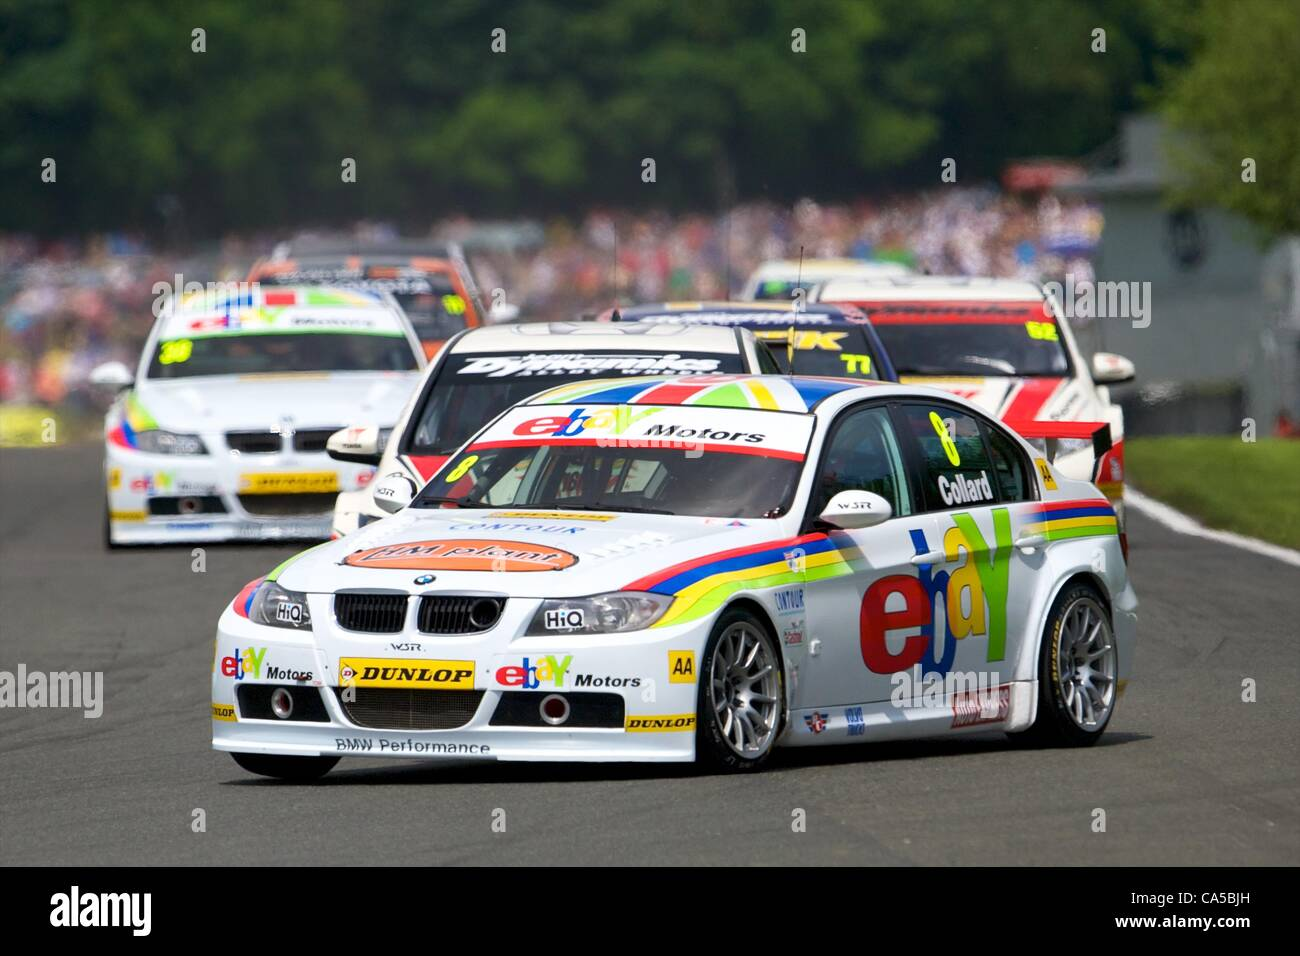 Ebay motors bmw user manuals sentinel bmw repair workshop manual 7 series e32 1988 1994 735i 735il 740i 740il 750il array 10 06 2012 oulton park england rob collard in his ebay motors fandeluxe Images